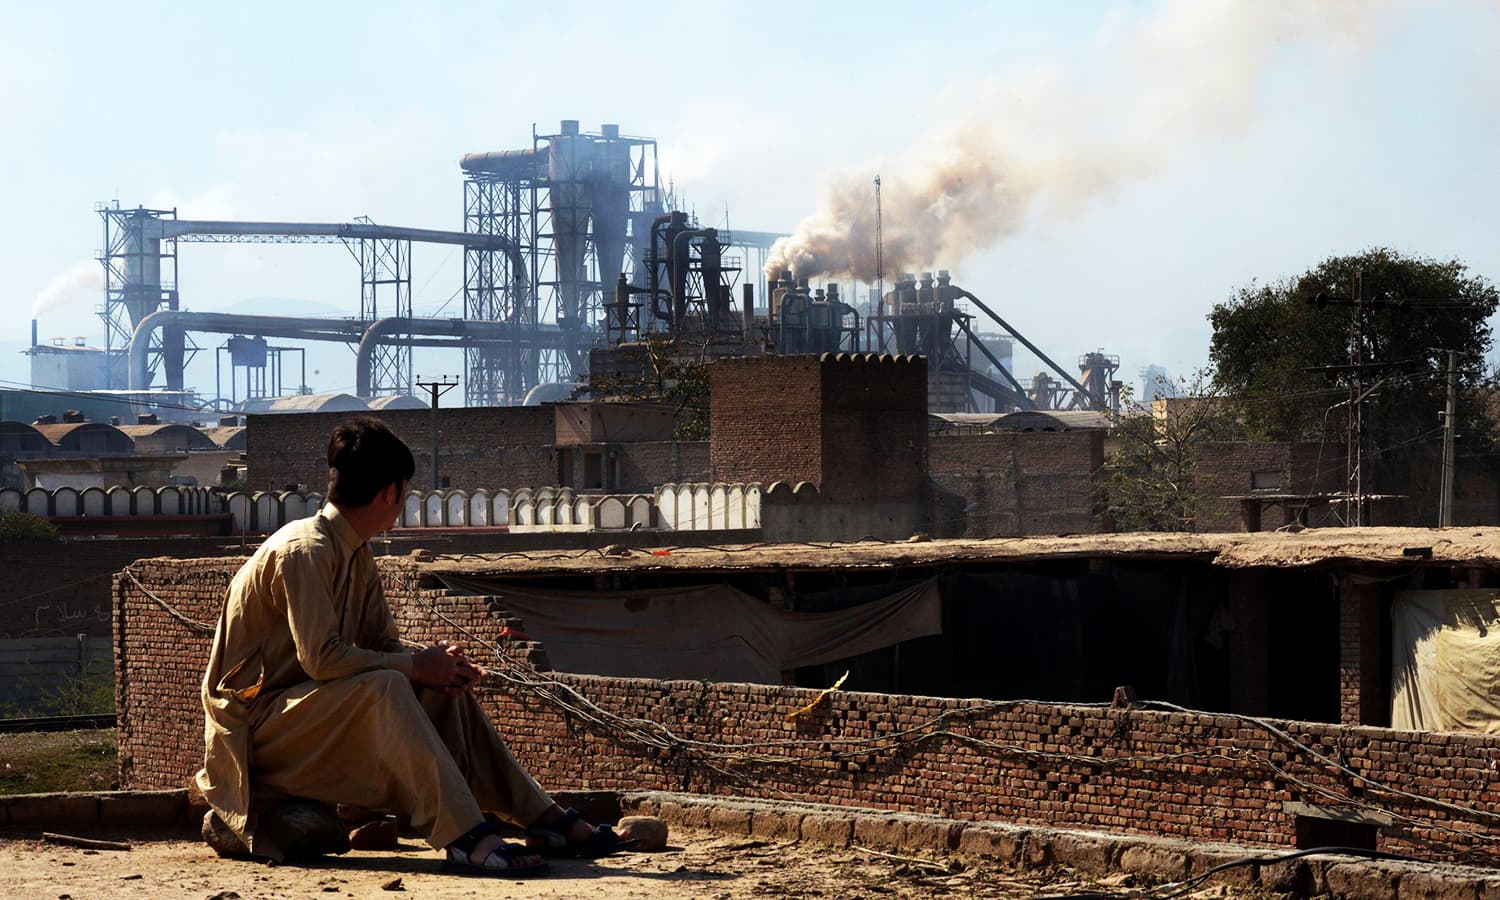 A worker watches smoke rise from factories on the outskirts of Peshawar. ─ AFP